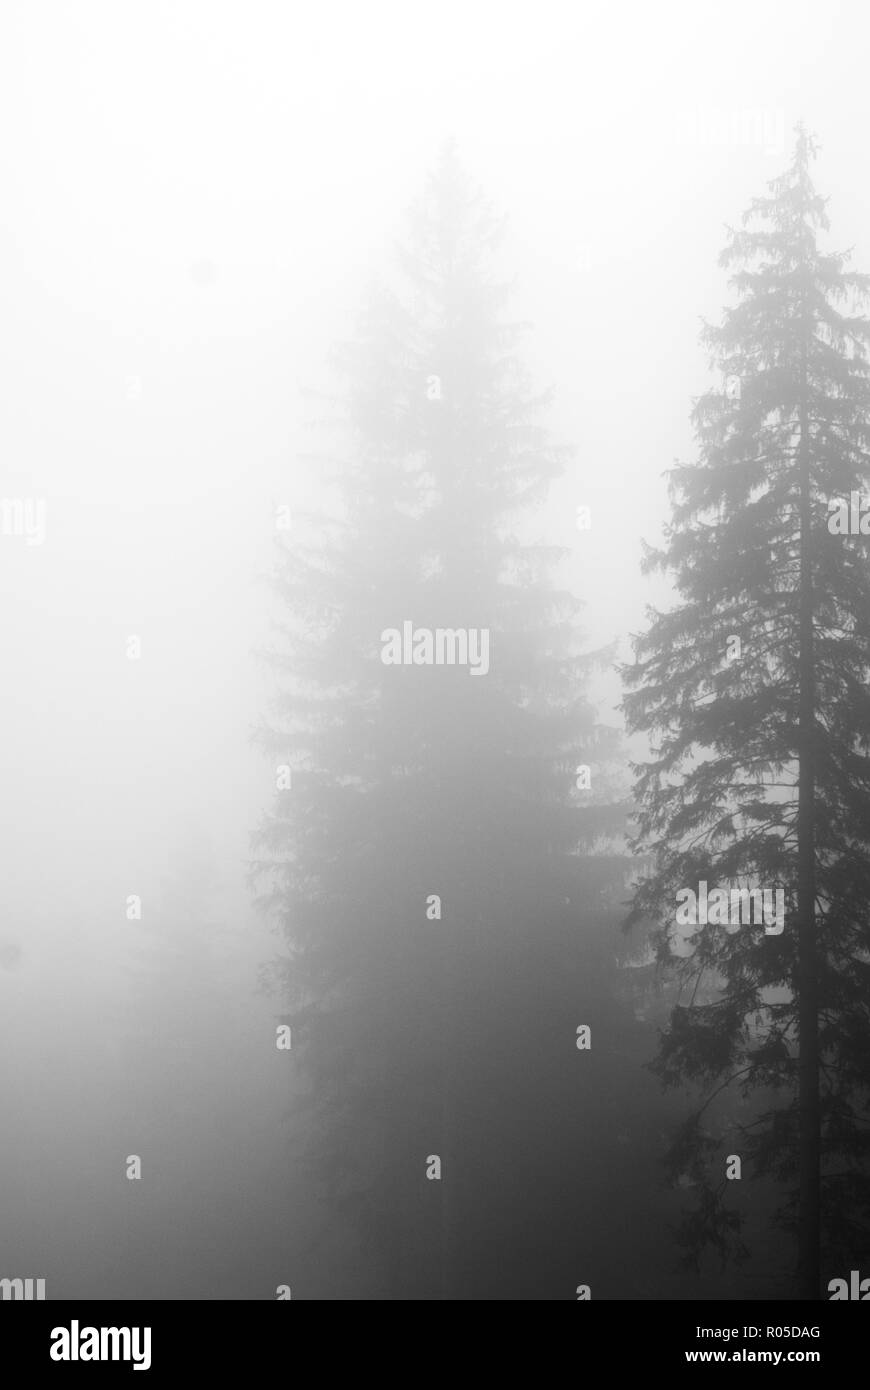 Vague silhouettes of two Norway spruces, Picea abies, vanishing in the mist - Stock Image